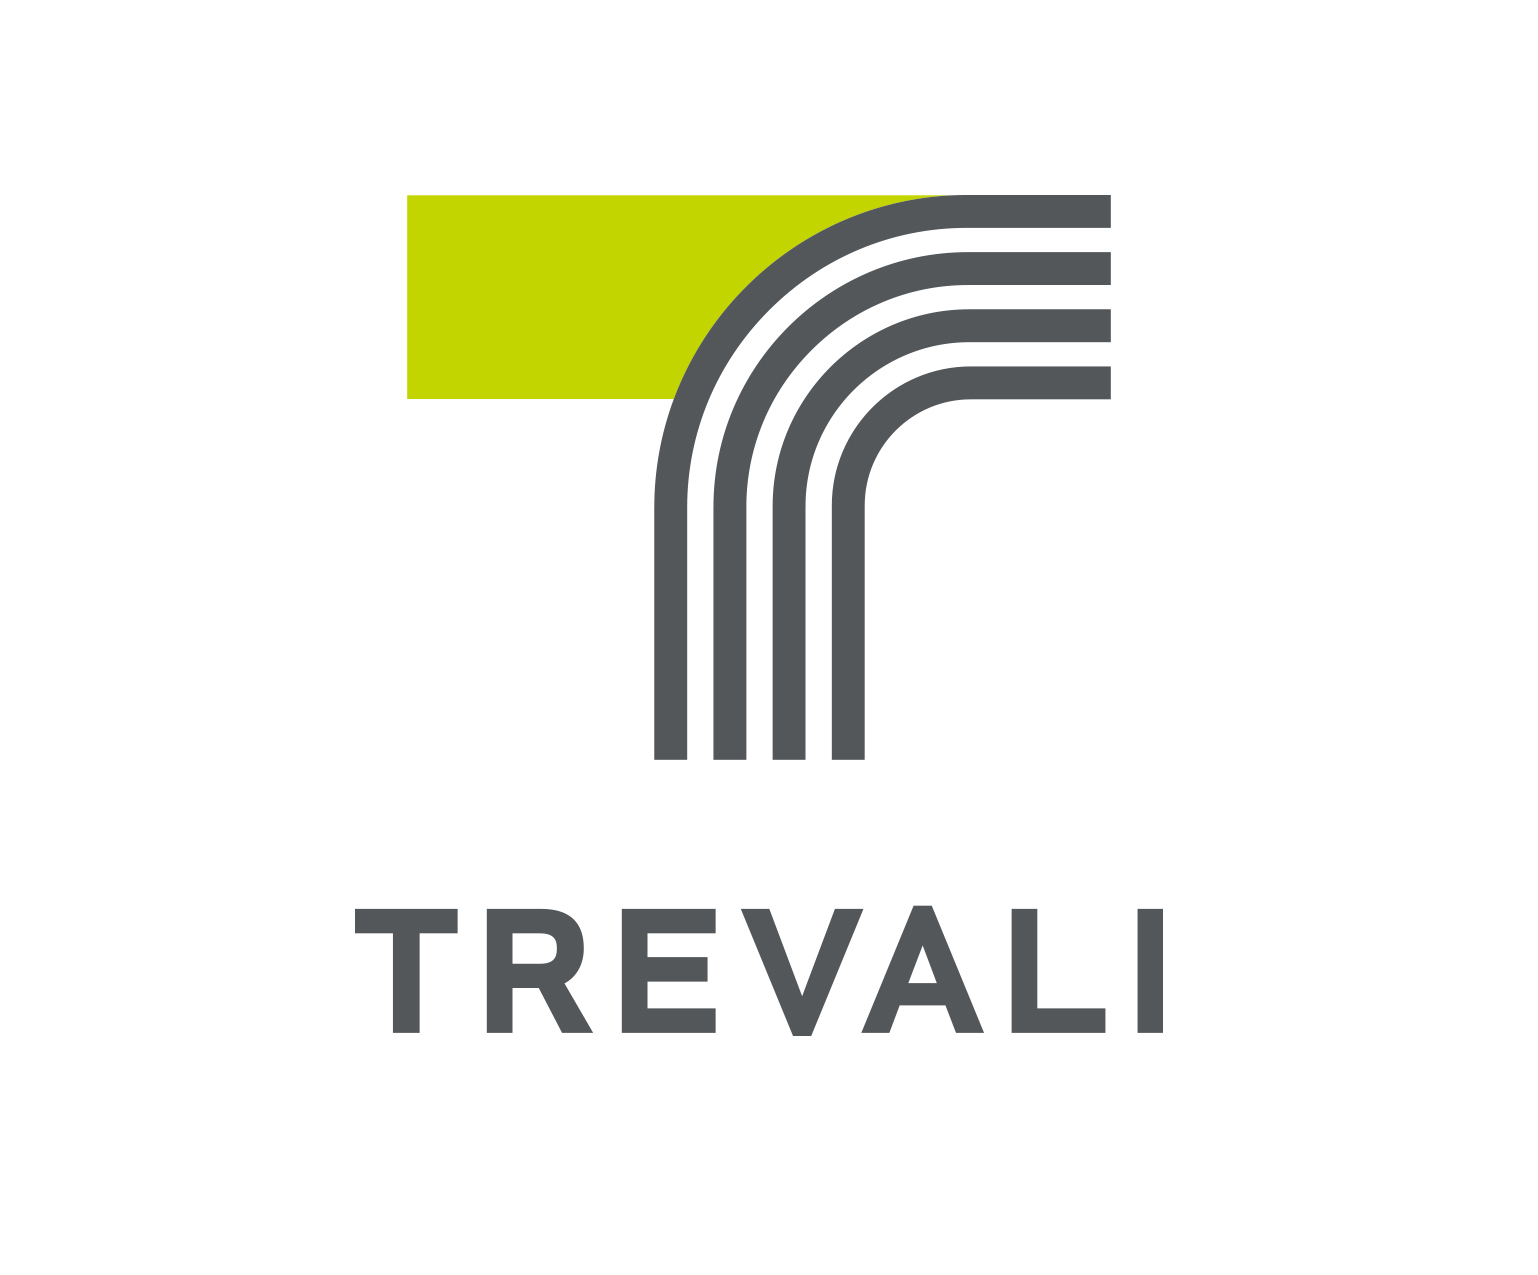 Trevali Issues Statement on COVID-19 Response and Provides Business Update, IncludingAmendment to Revolving Credit Facility